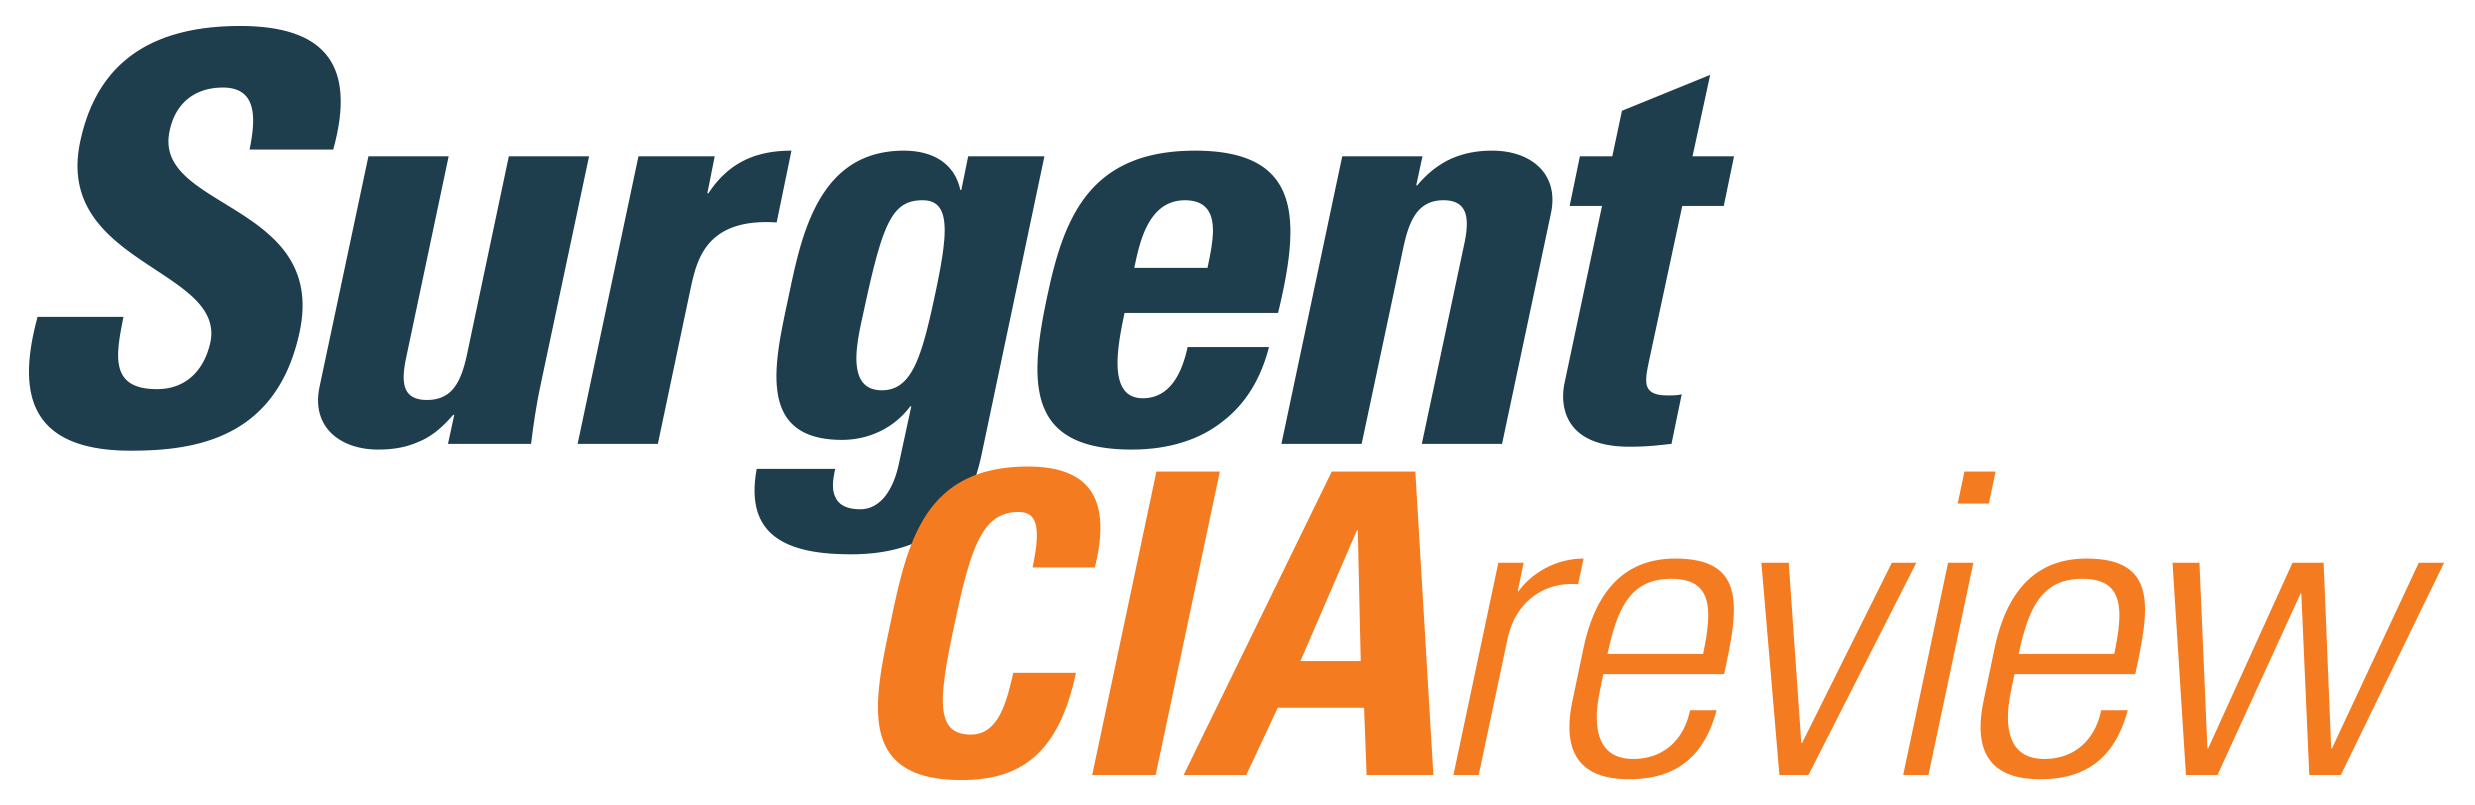 surgent cia review logo